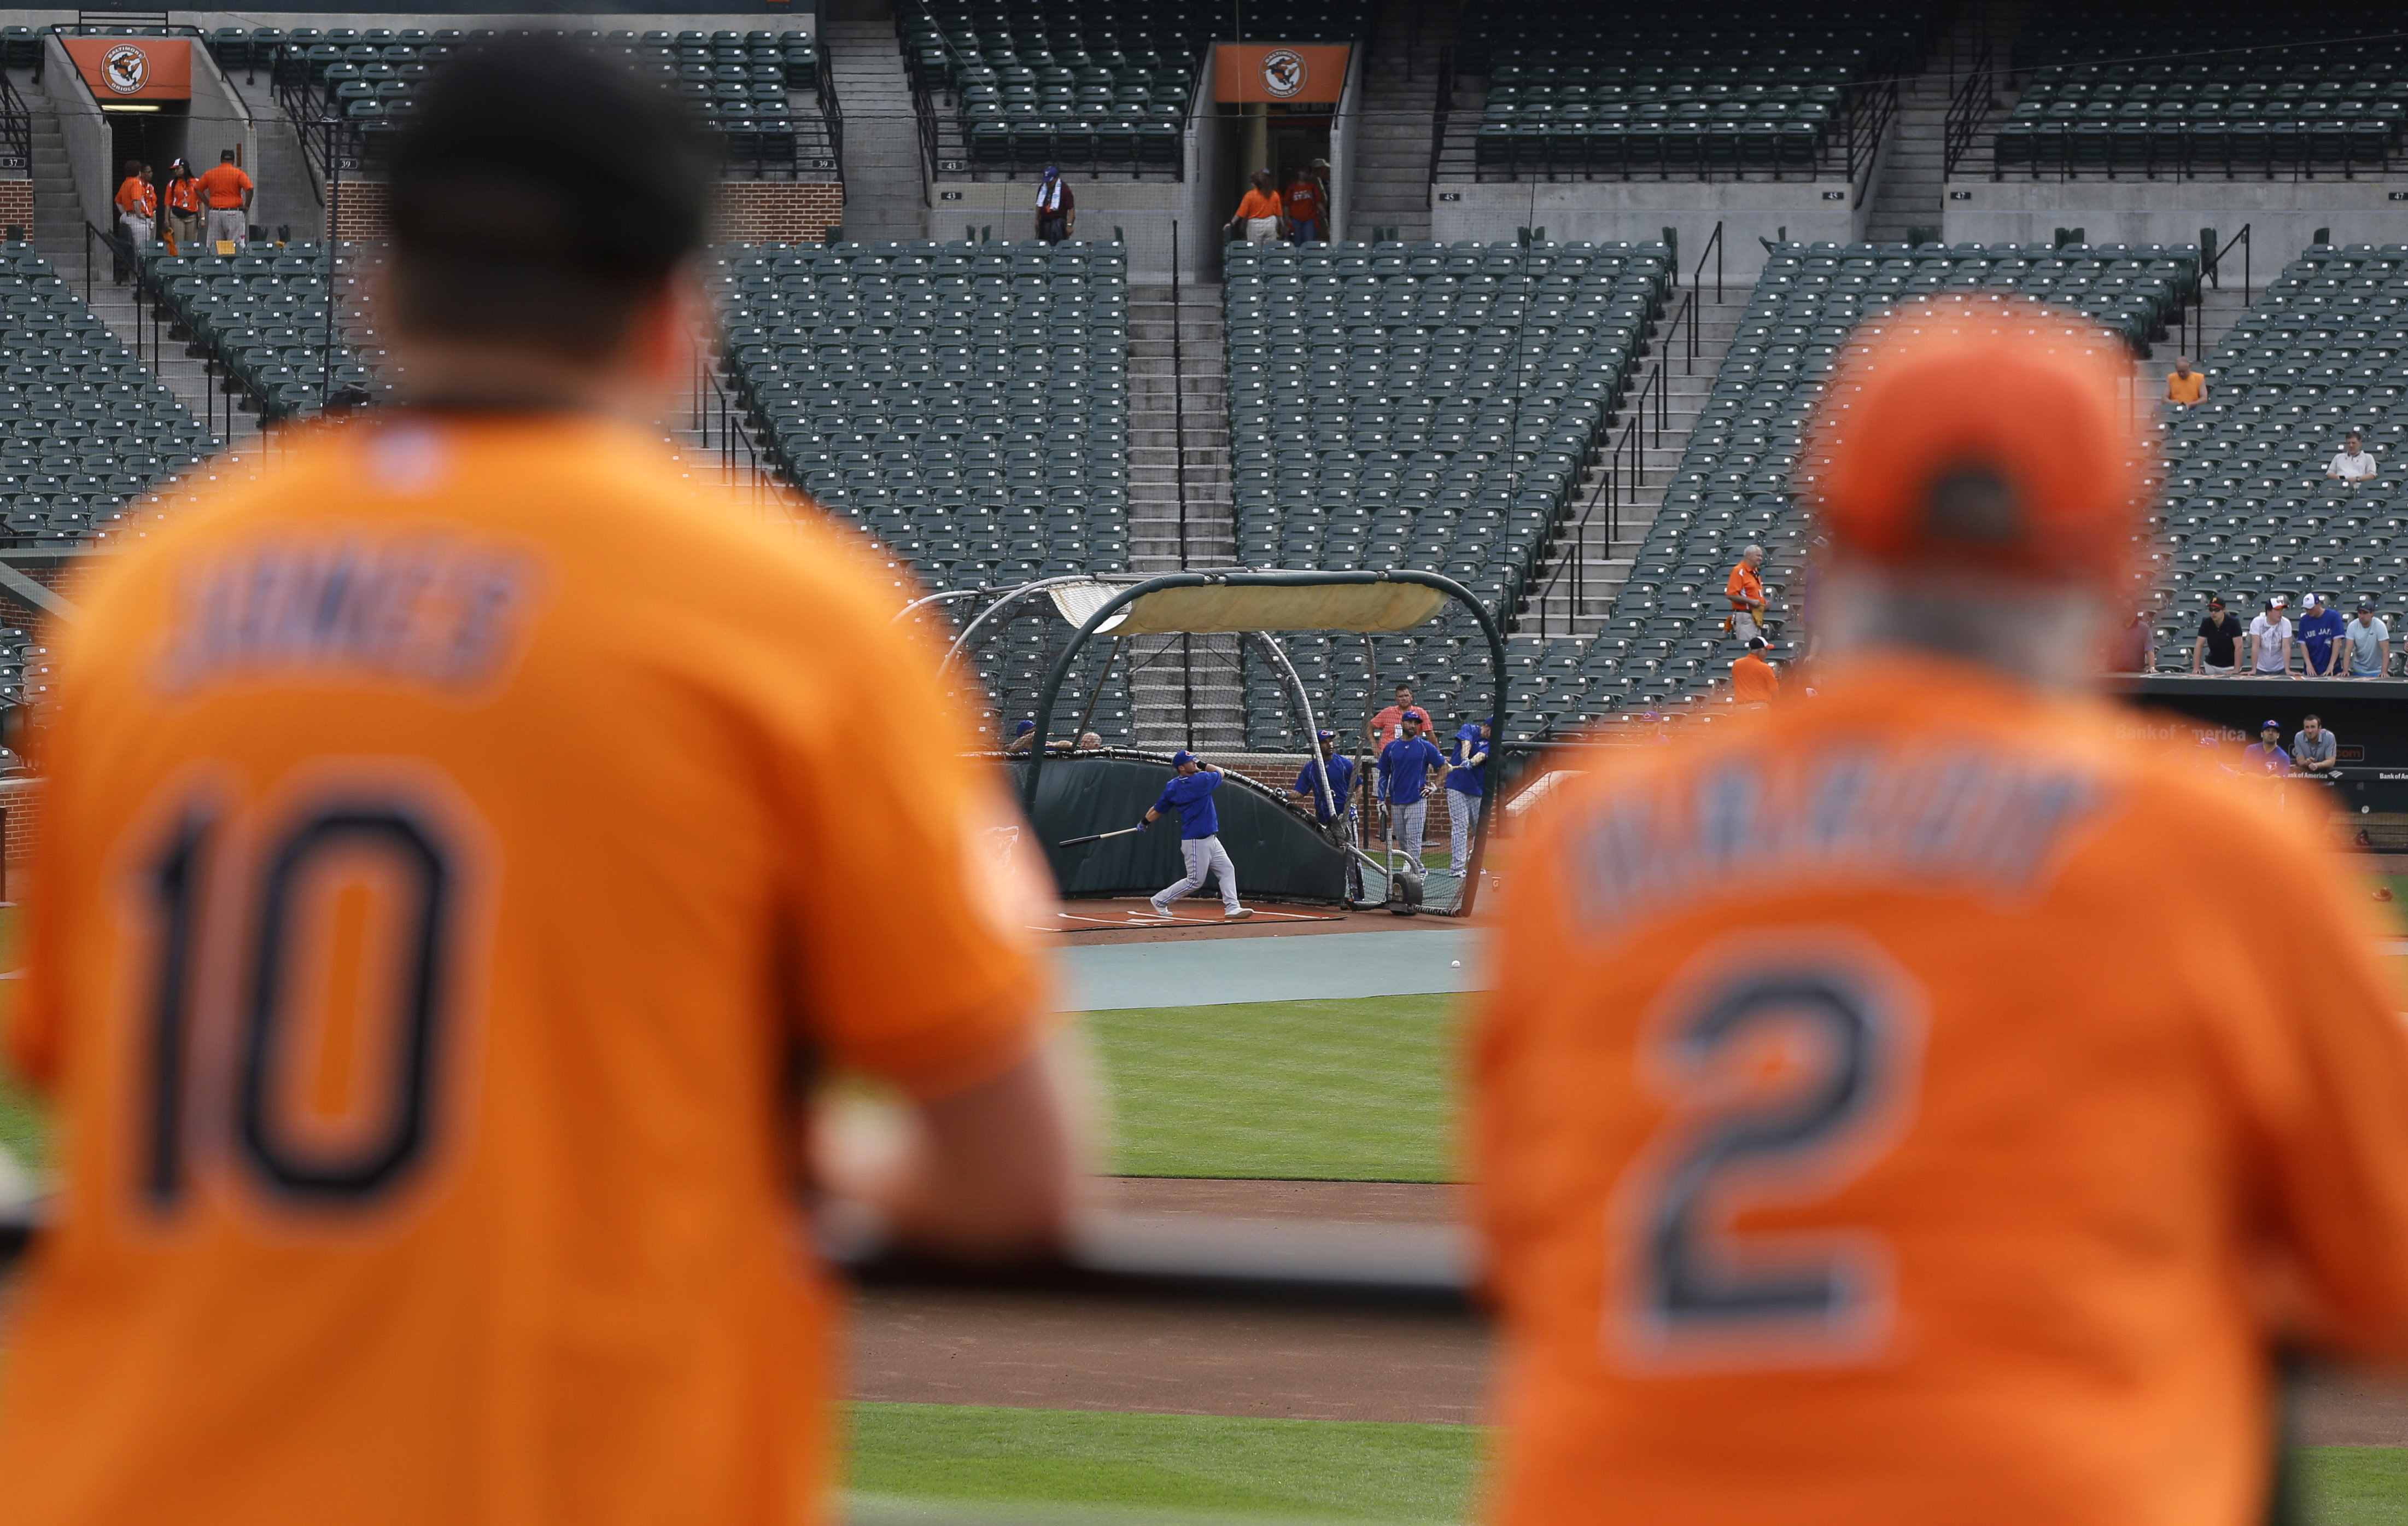 Baltimore Orioles fans watch members of the Toronto Blue Jays take batting practice before a baseball game between the Orioles and the Blue Jays, Monday, May 11, 2015, in Baltimore. Playing in front of their home fans for the first time in two weeks, the